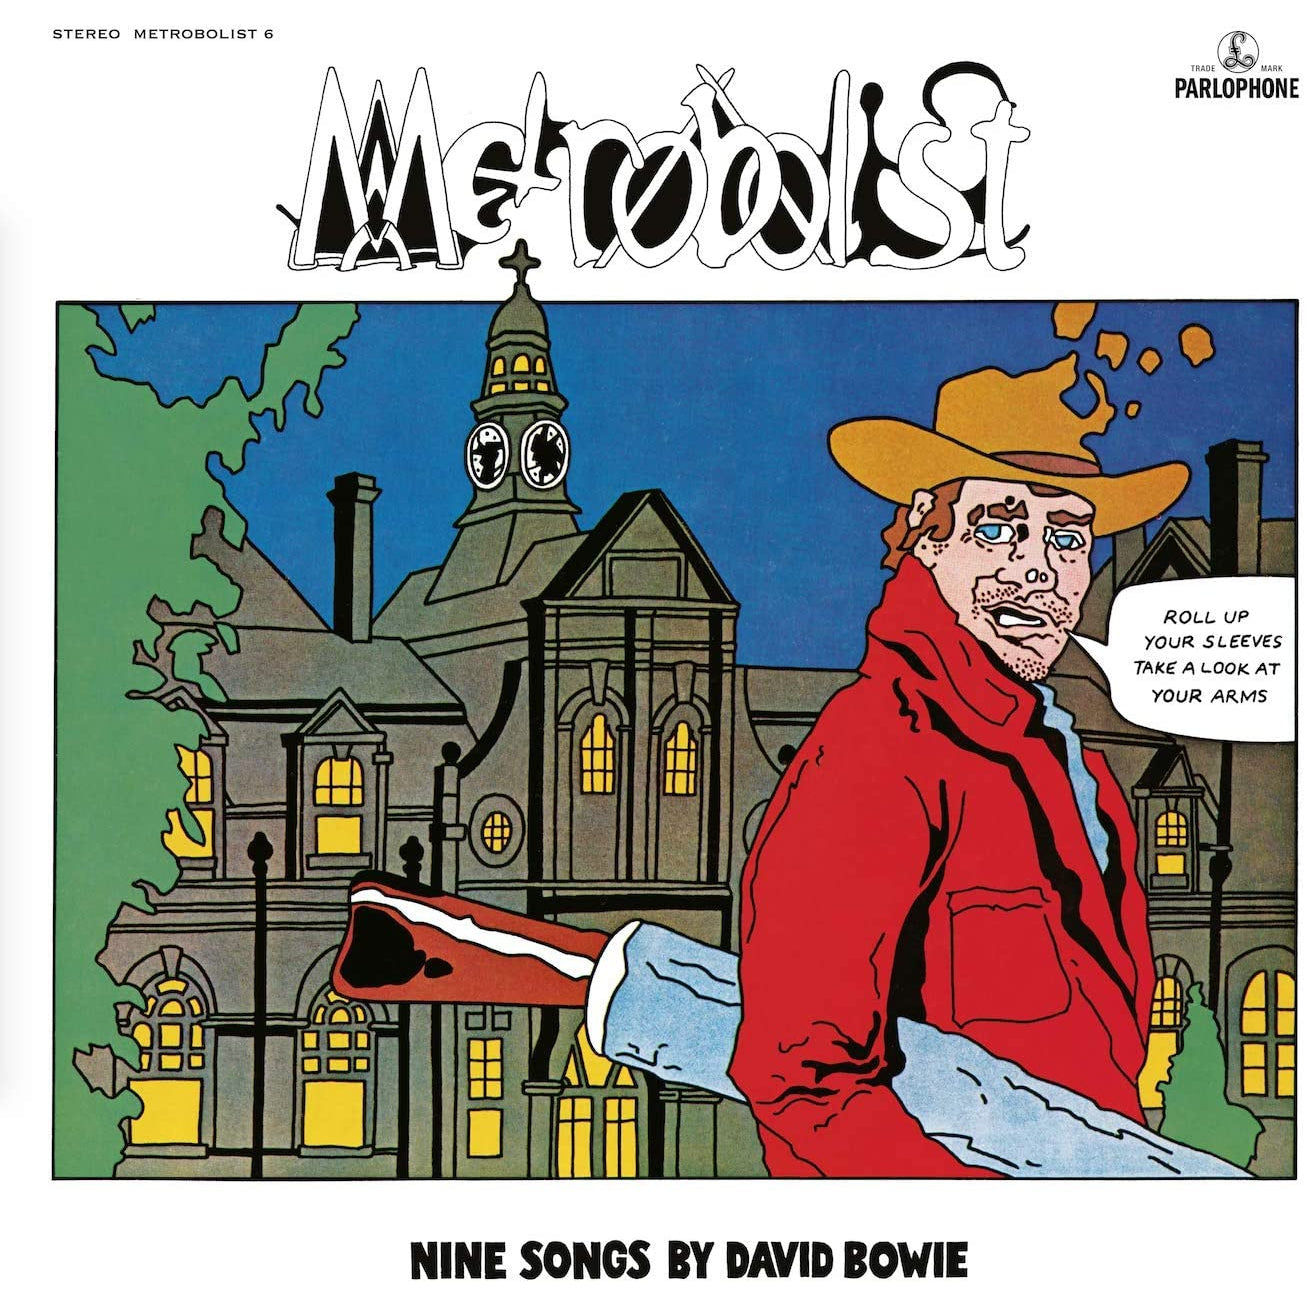 Metrobolist (aka The Man Who Sold The World) - David Bowie [2020 Mix] [CD]